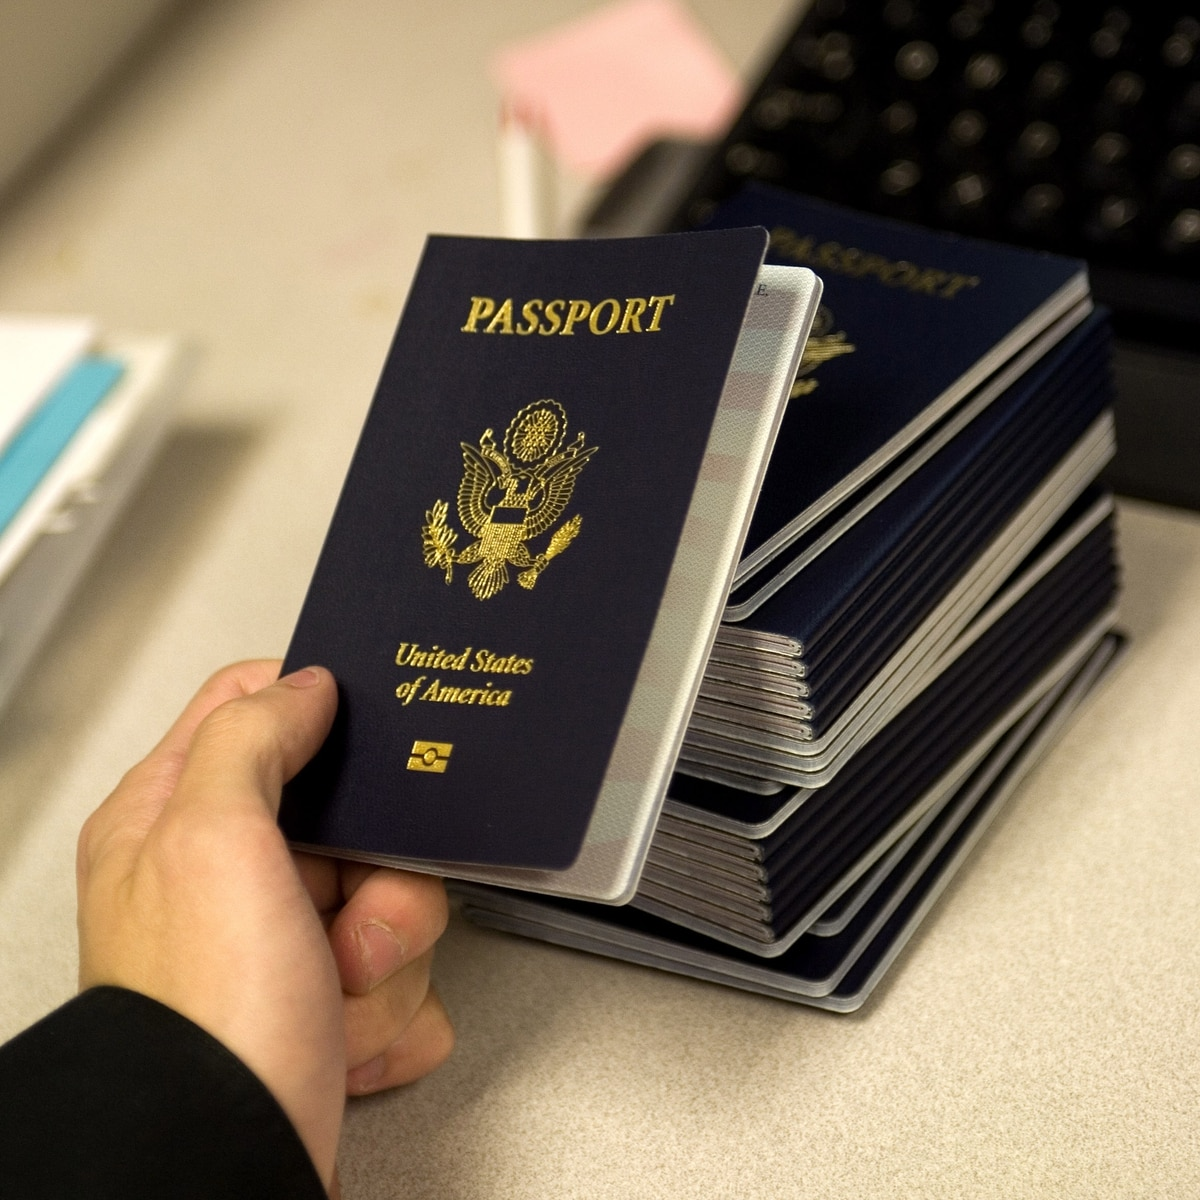 (files) A Us Government Official With The State Department's Passport  Services Reaches For A New Blank Us Passport With An Embedded Electronic  Chip To Begin